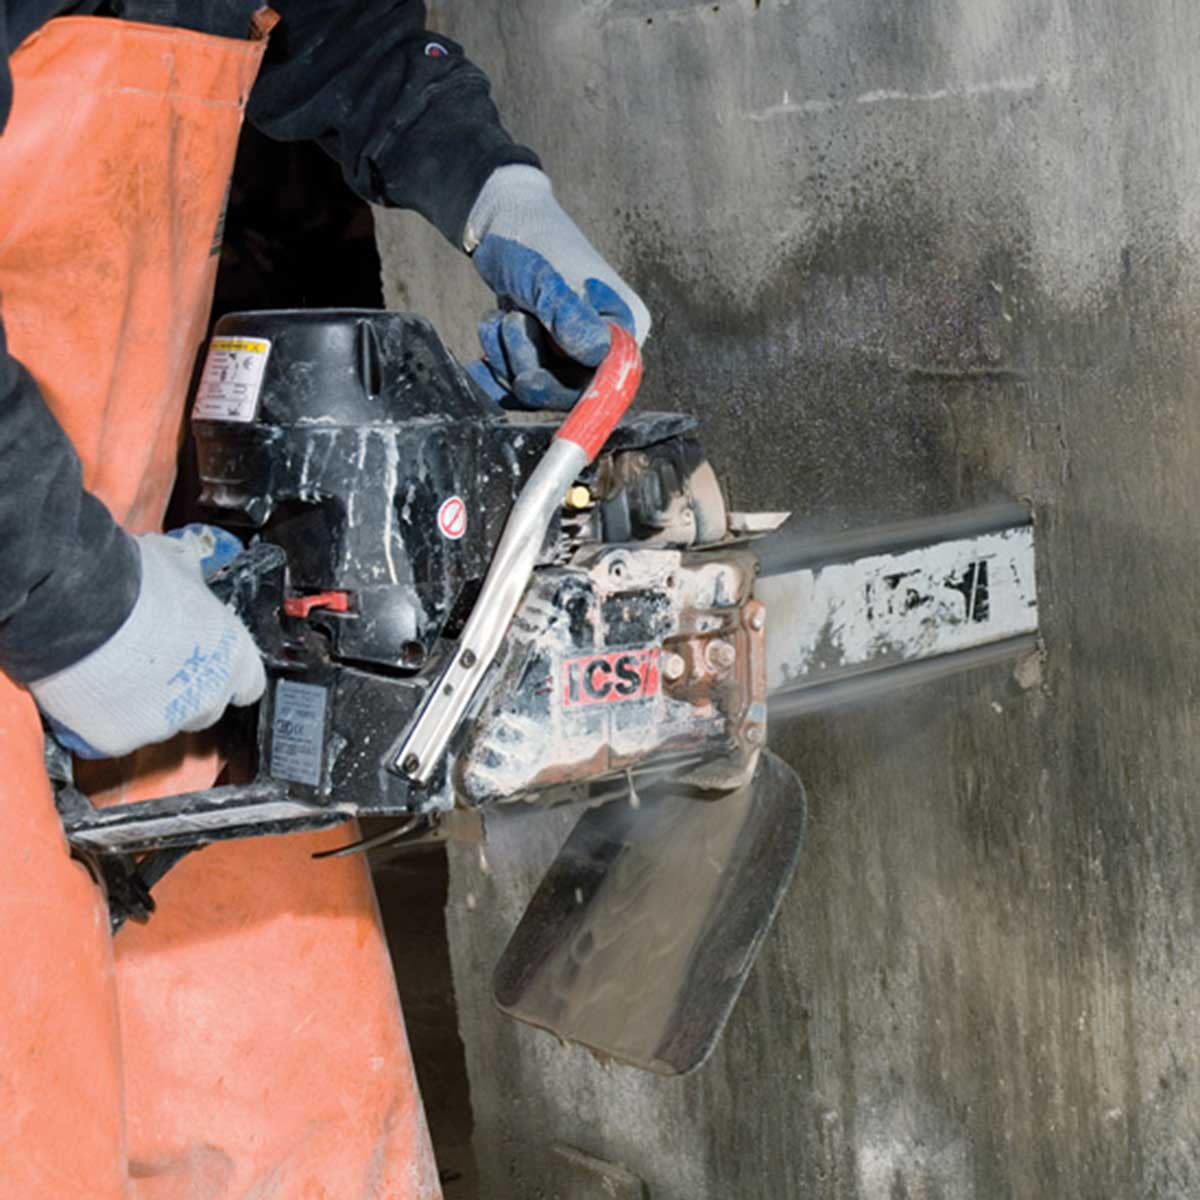 ICS 680ES Concrete wall cut